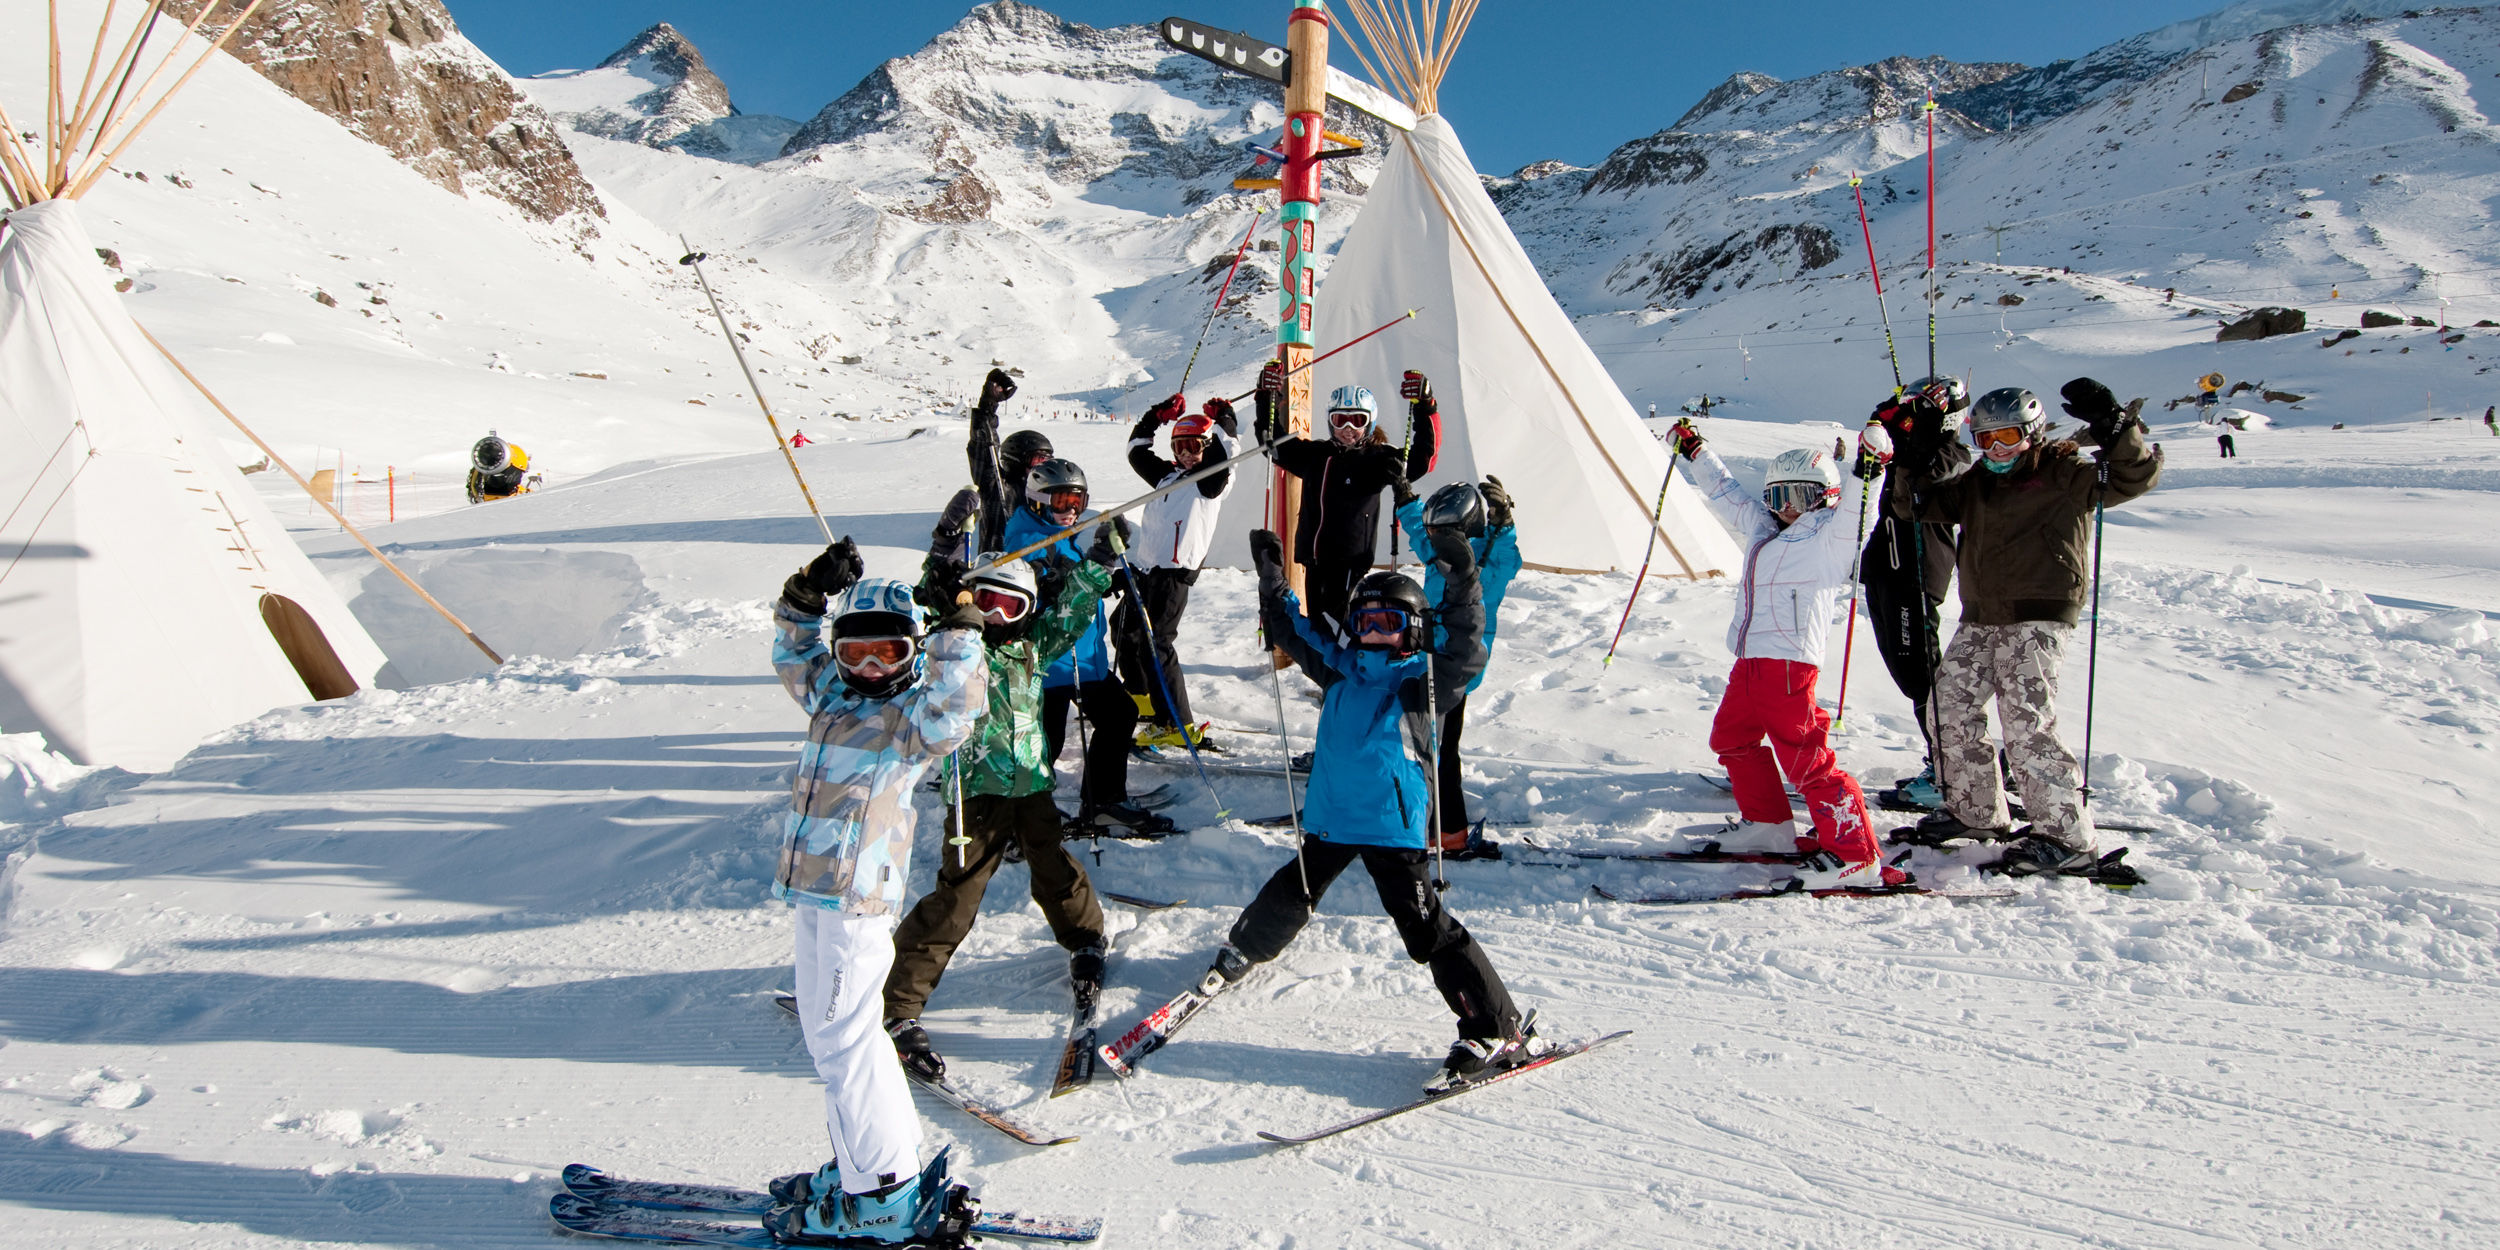 Hohsi-Land Winter - Free Republic of Holidays Saas-Fee